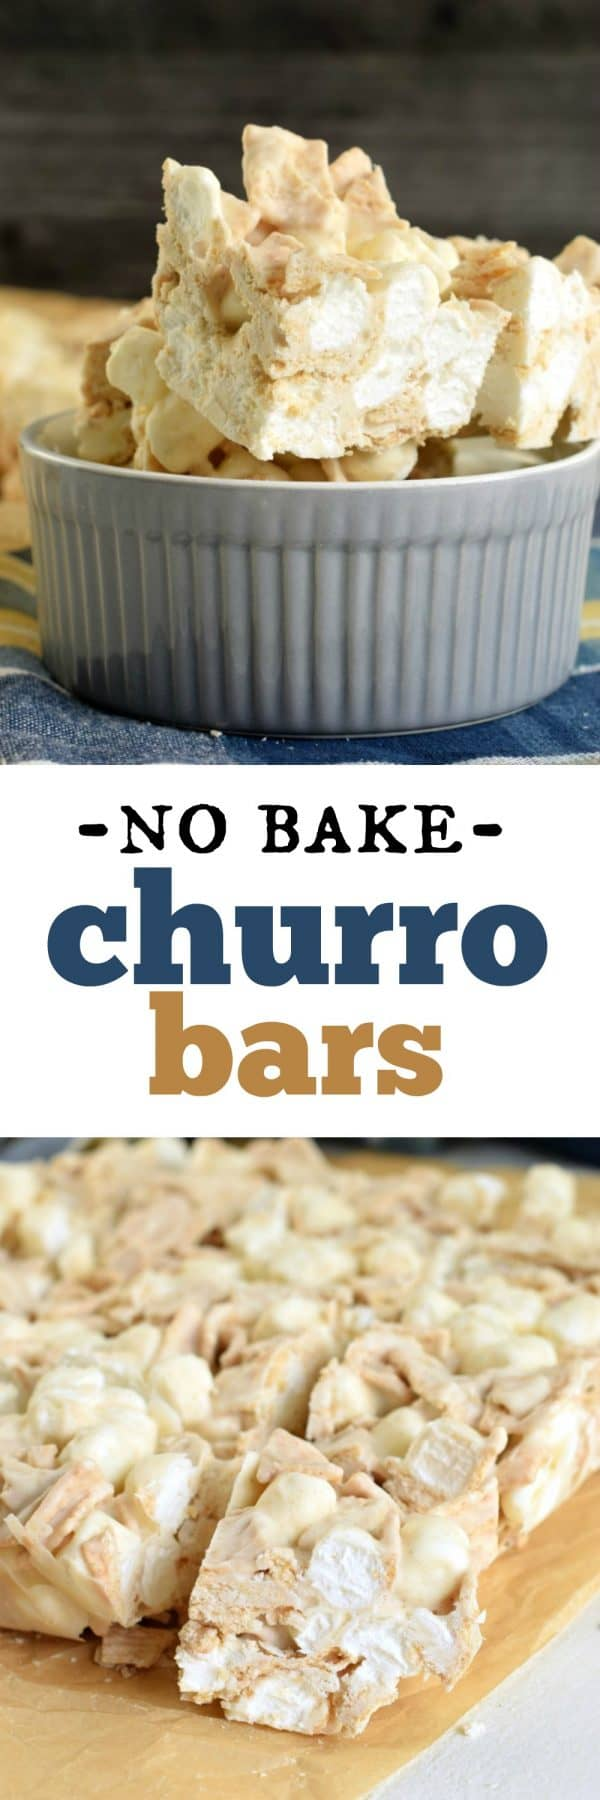 Easy No Bake Churro Bars with only 3 ingredients. Perfect for any time of year!